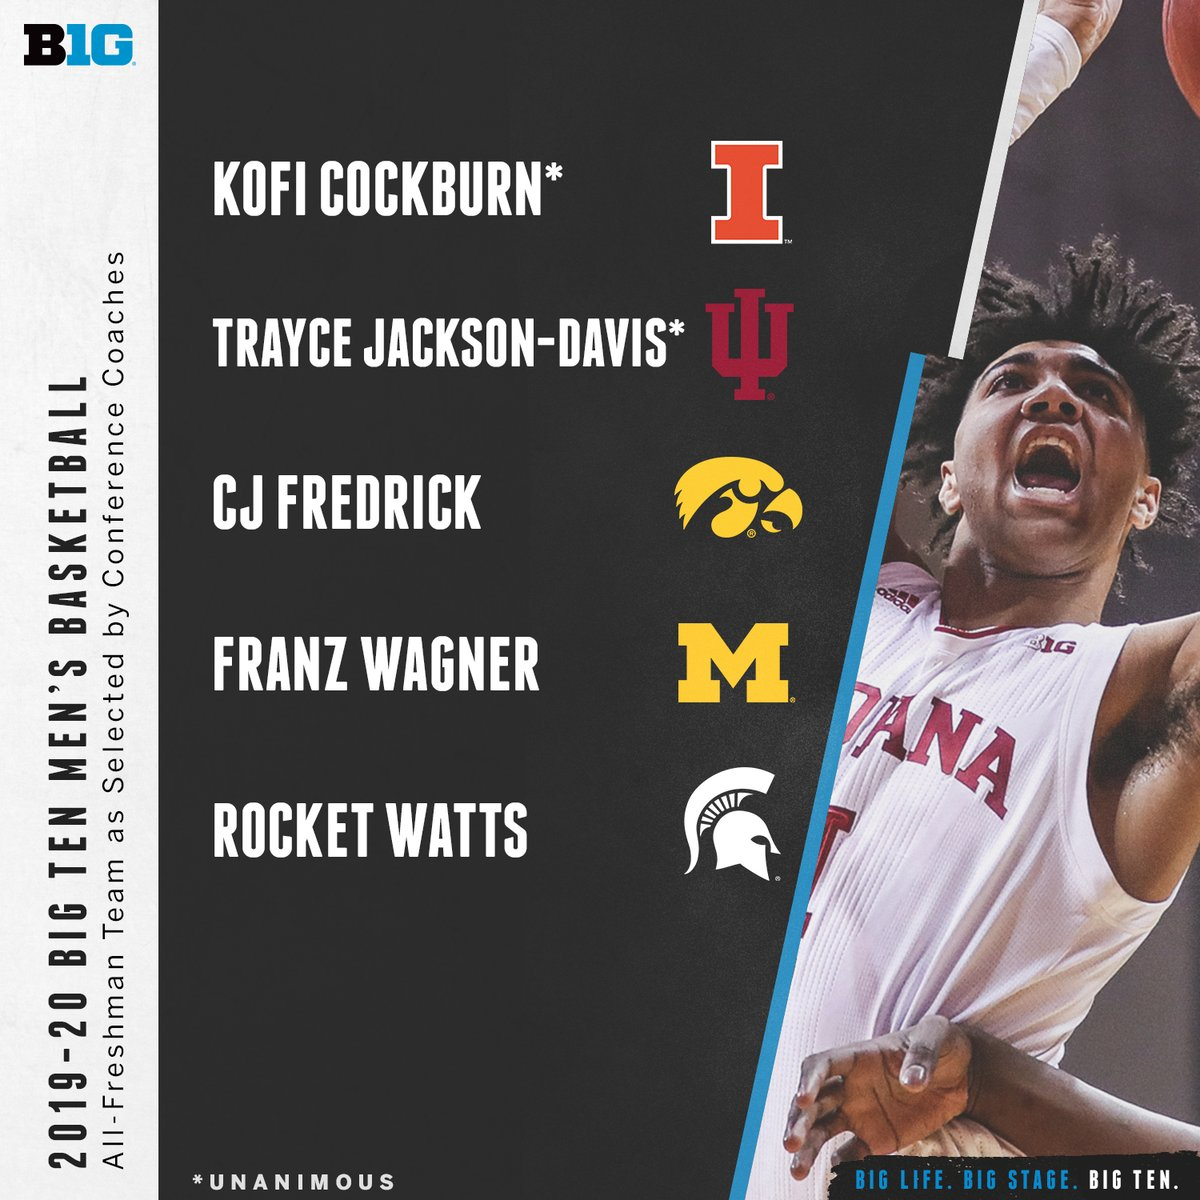 The 2019-20 Big Ten Men's Basketball All-Freshman Team as selected by conference coaches. #B1GMBBall